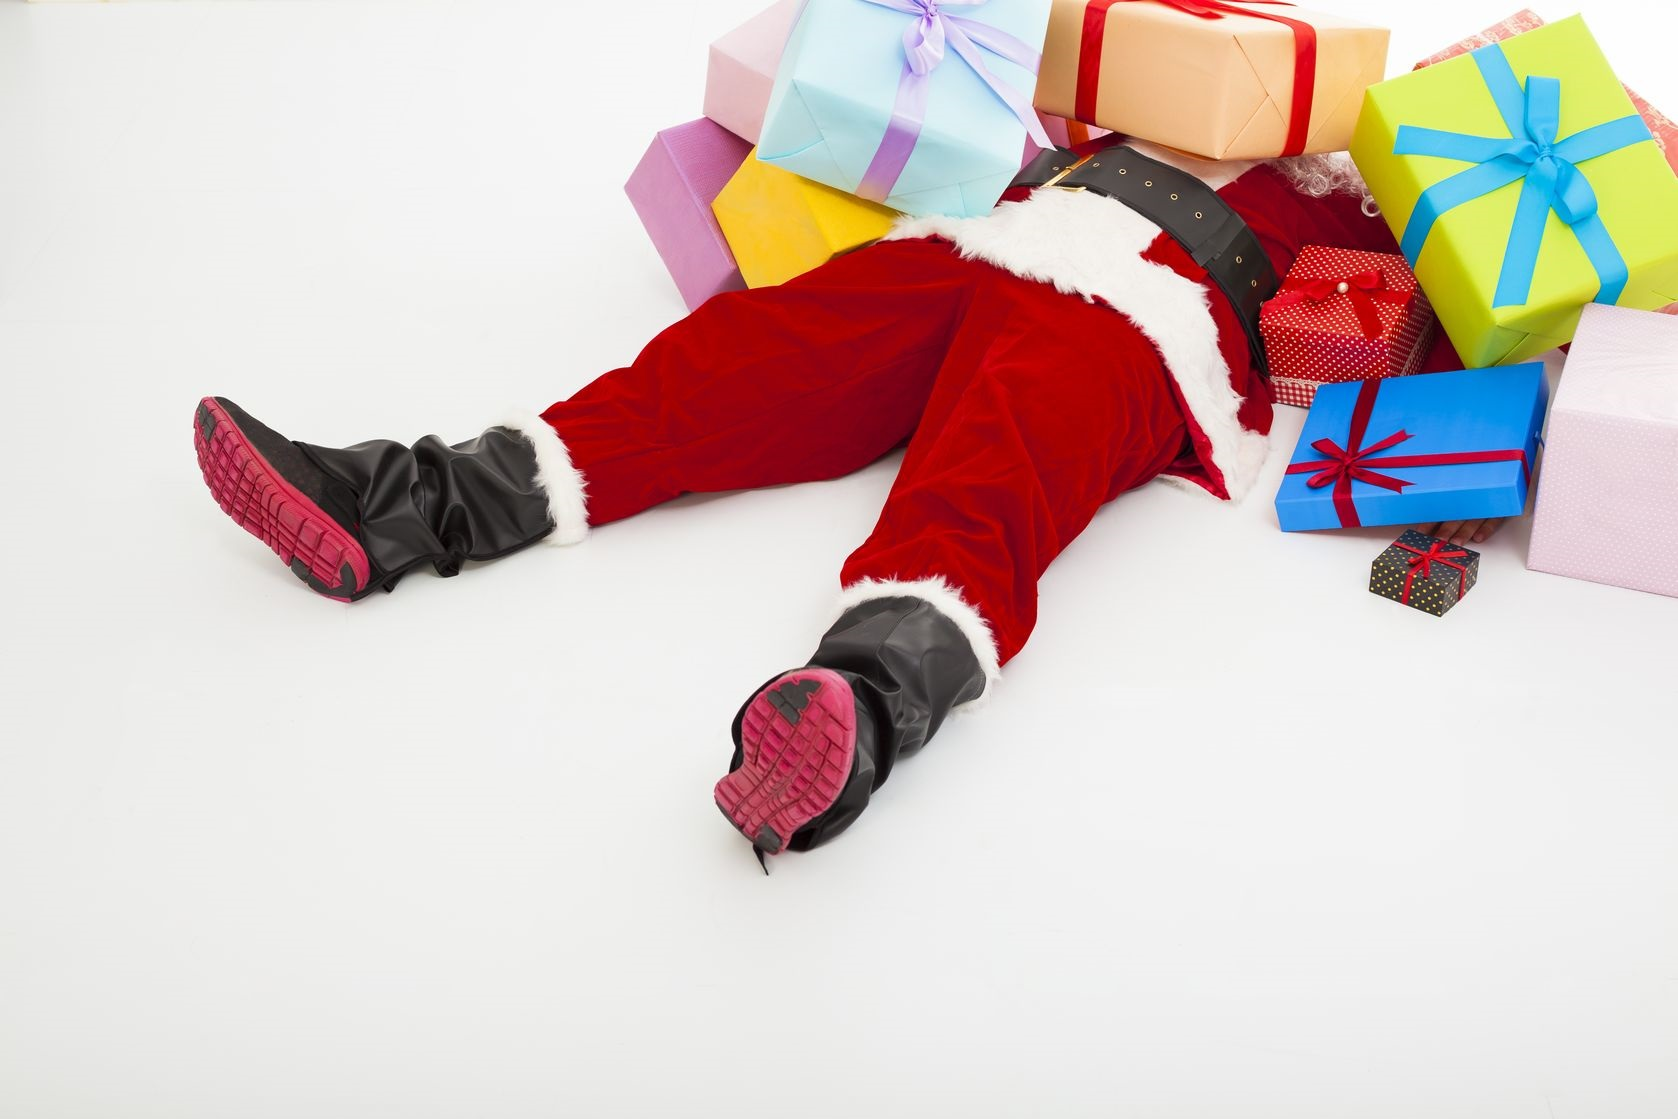 32315808 - santa claus too tired to lie on floor with many gift boxes over white